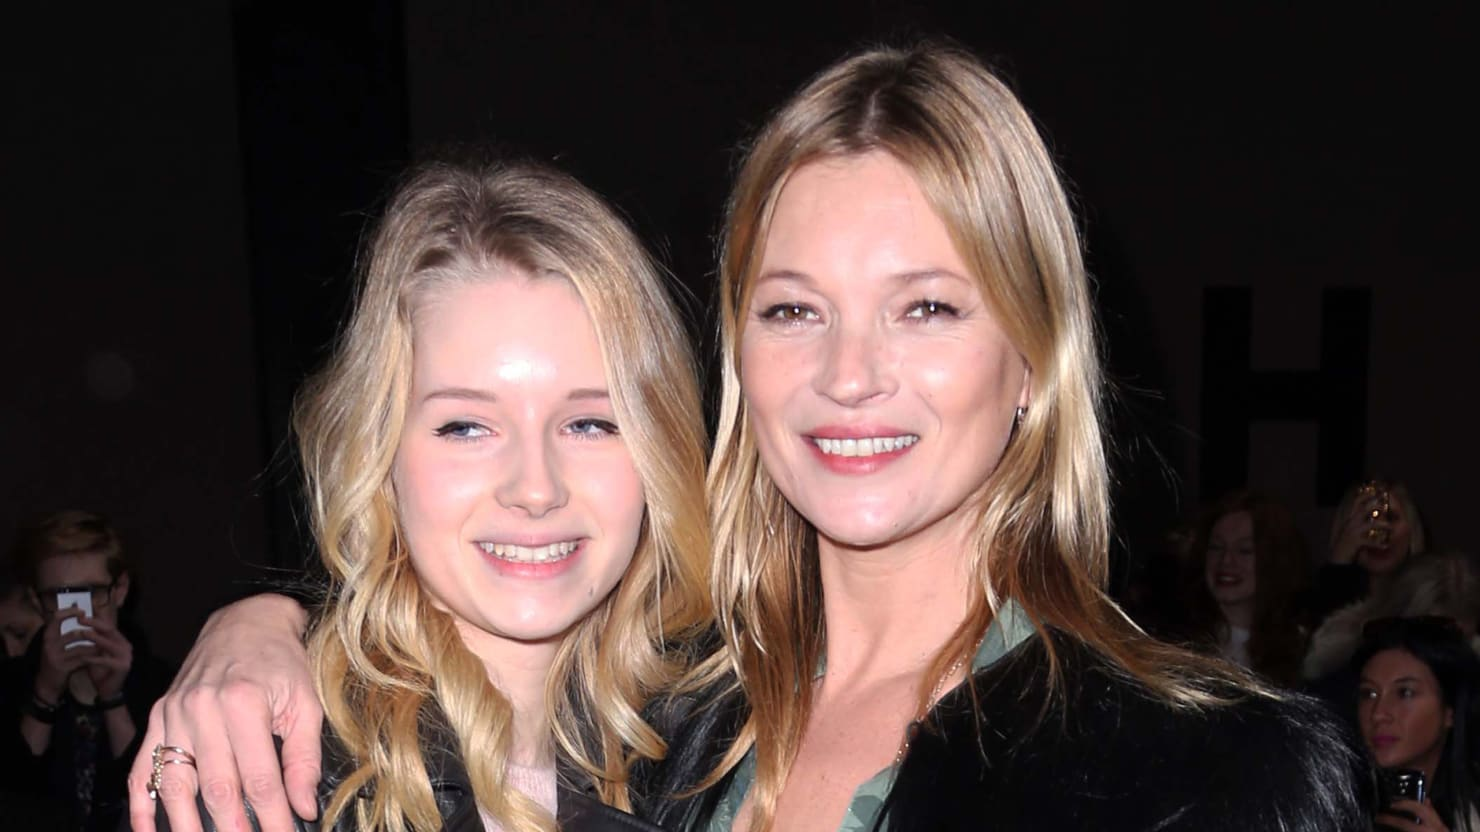 kate moss advises younger sister to drop out of school